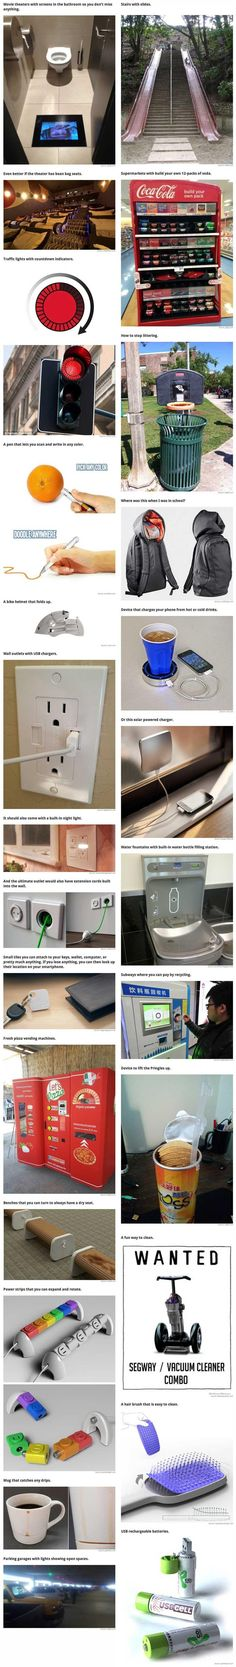 26 clever innovations that totally need to be everywhere already. Really cool inventions that are a necessity. Tech Gadgets, Cool Gadgets, Kids Gadgets, Objet Wtf, Nouvelles Inventions, Weird Inventions, Amazing Inventions, Billy Mays, Innovation